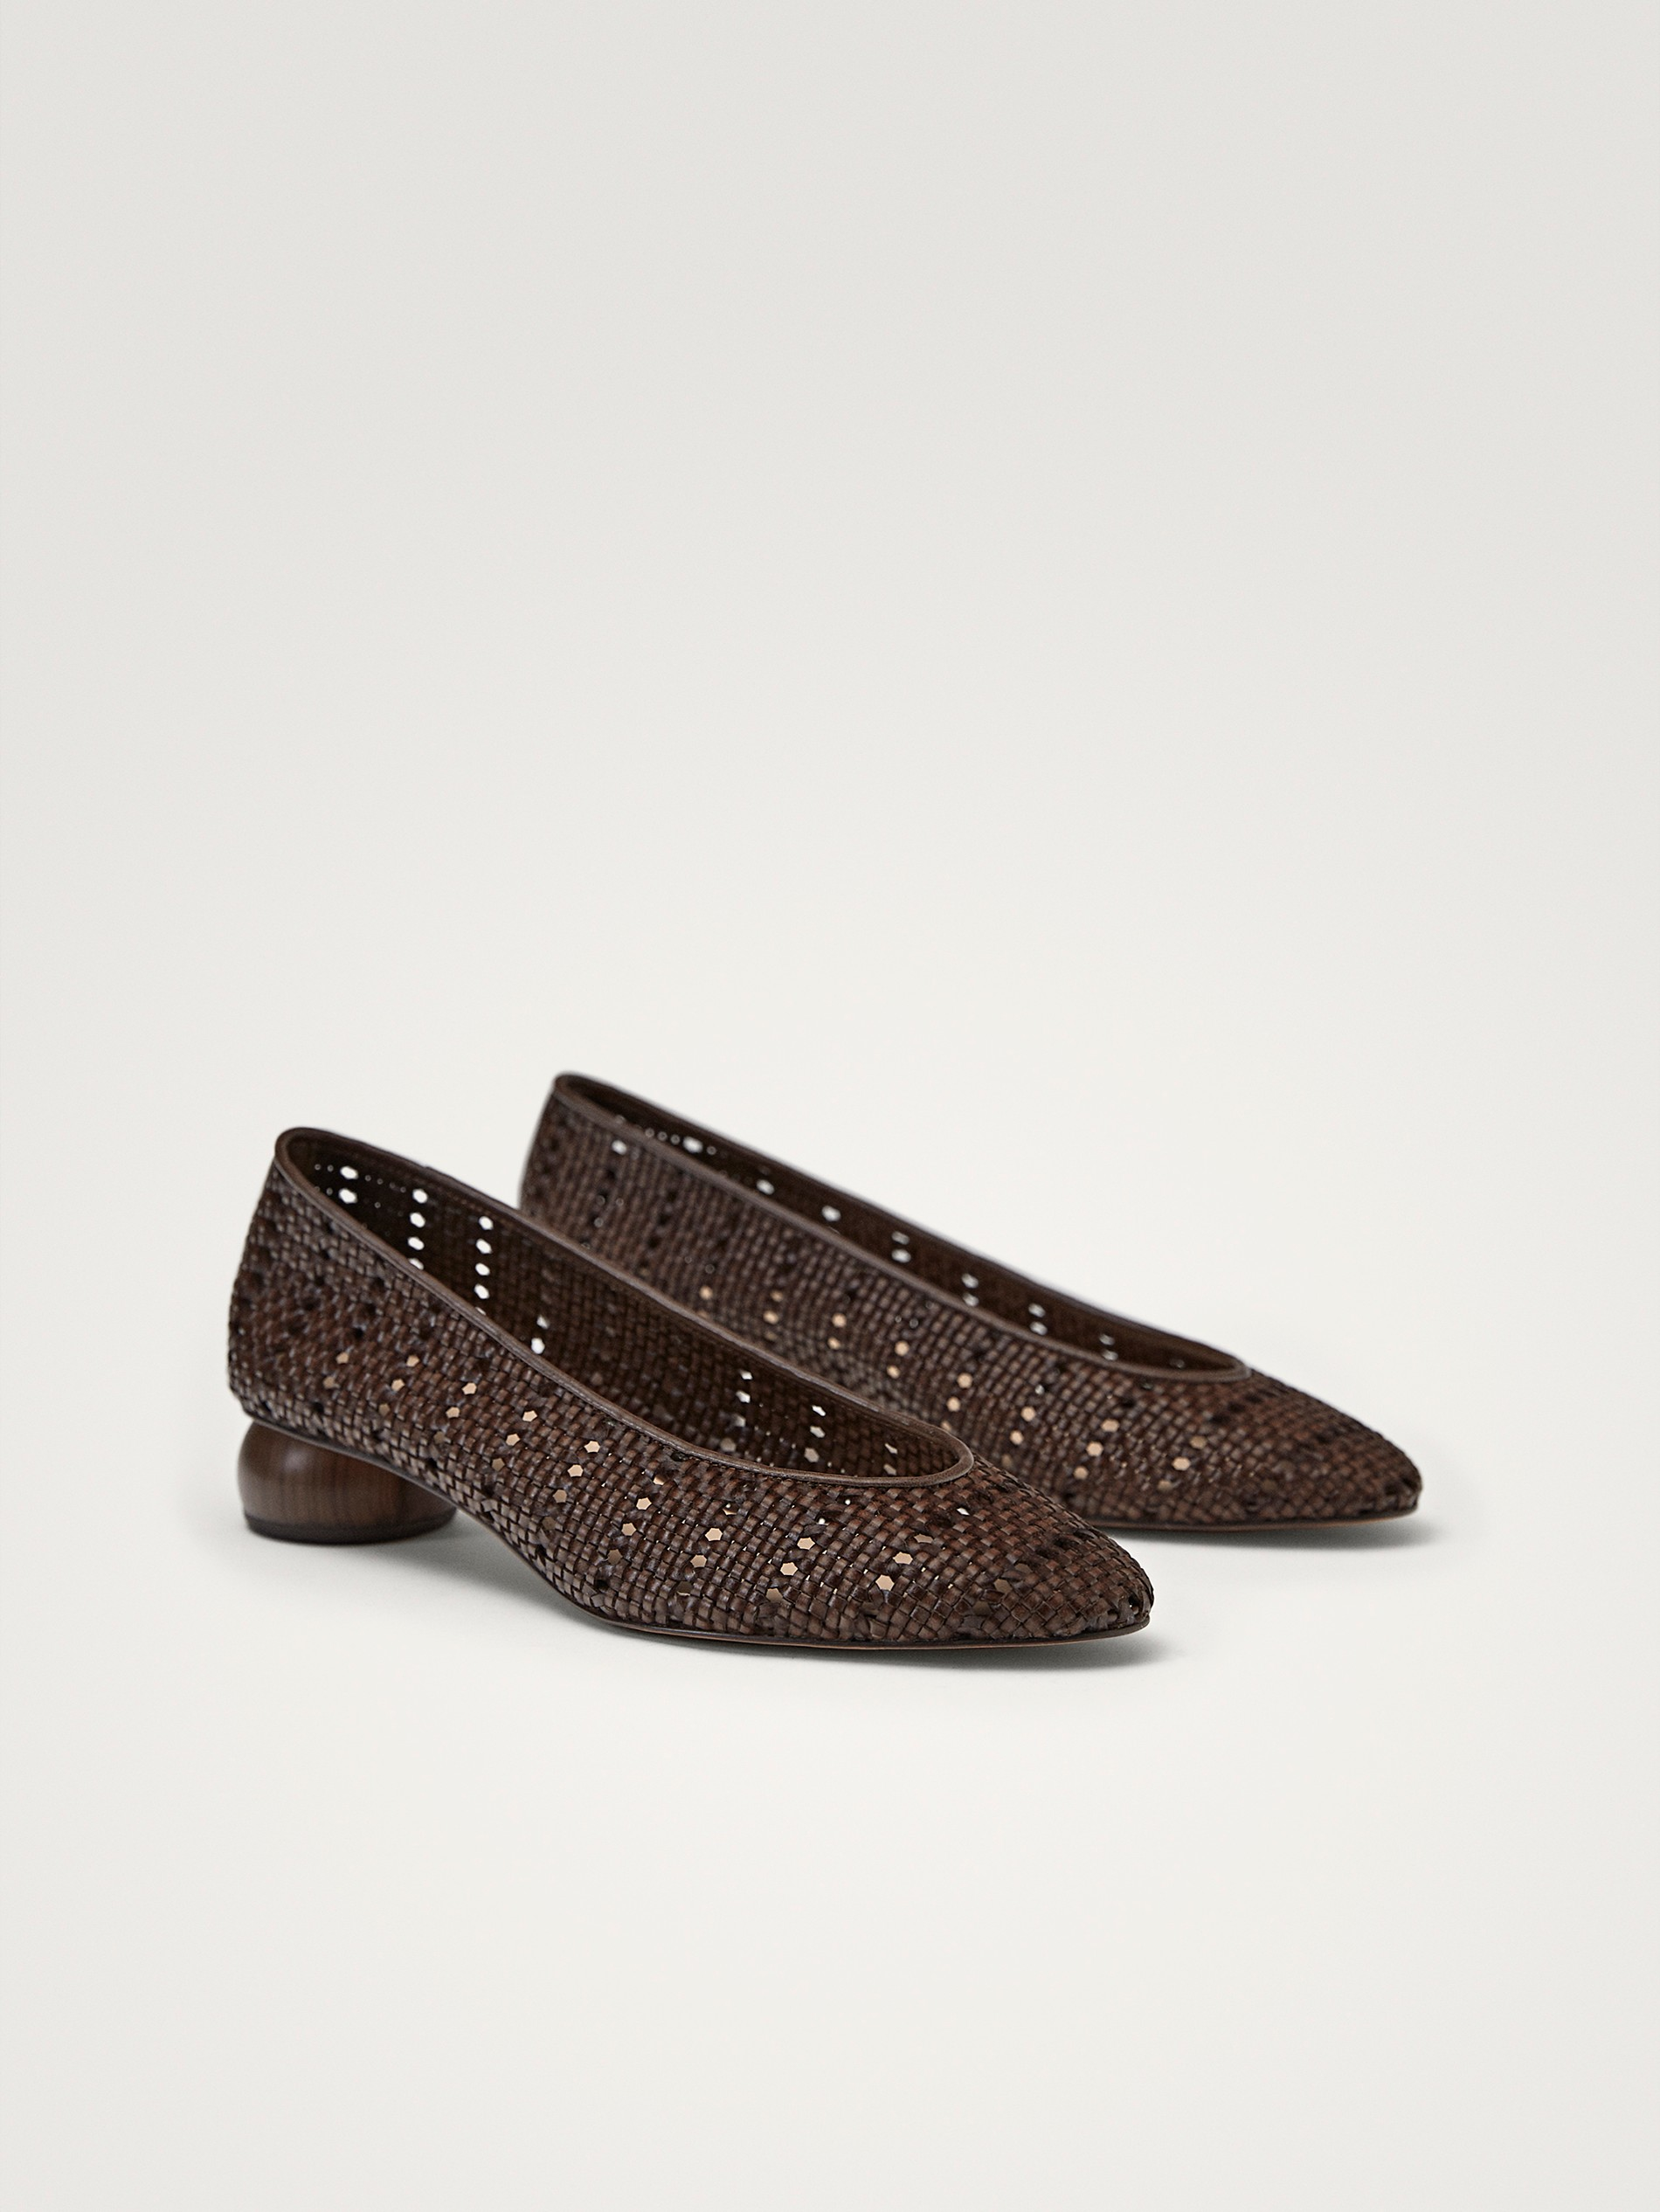 Chaussures Us Marque Femme Taille Eur Gabor 5 6 39 n0kX8OPw